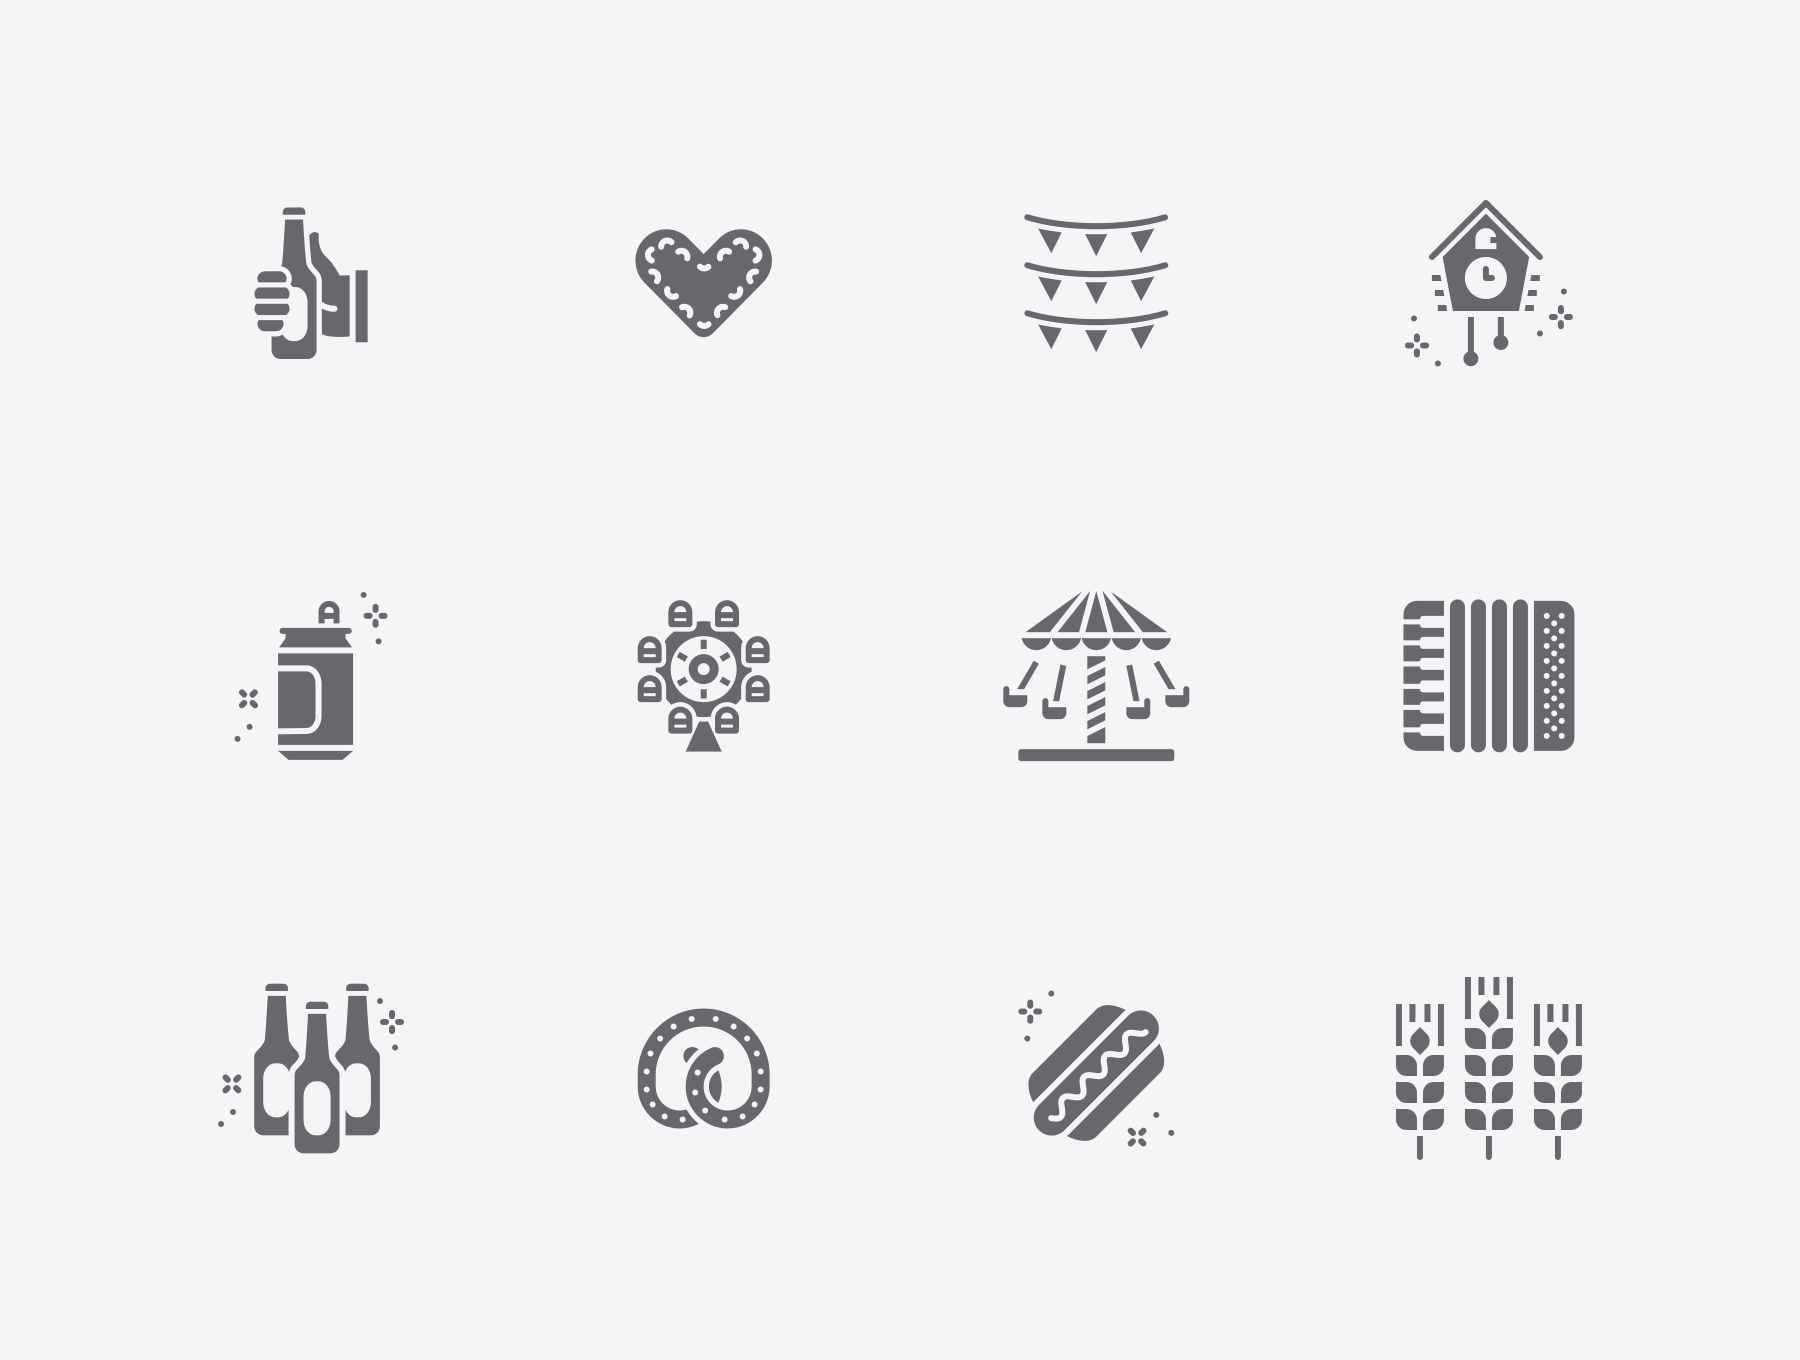 Cloud Database Farm Hosting Server Icon Download On Iconfinder Clouds Icon Business Design